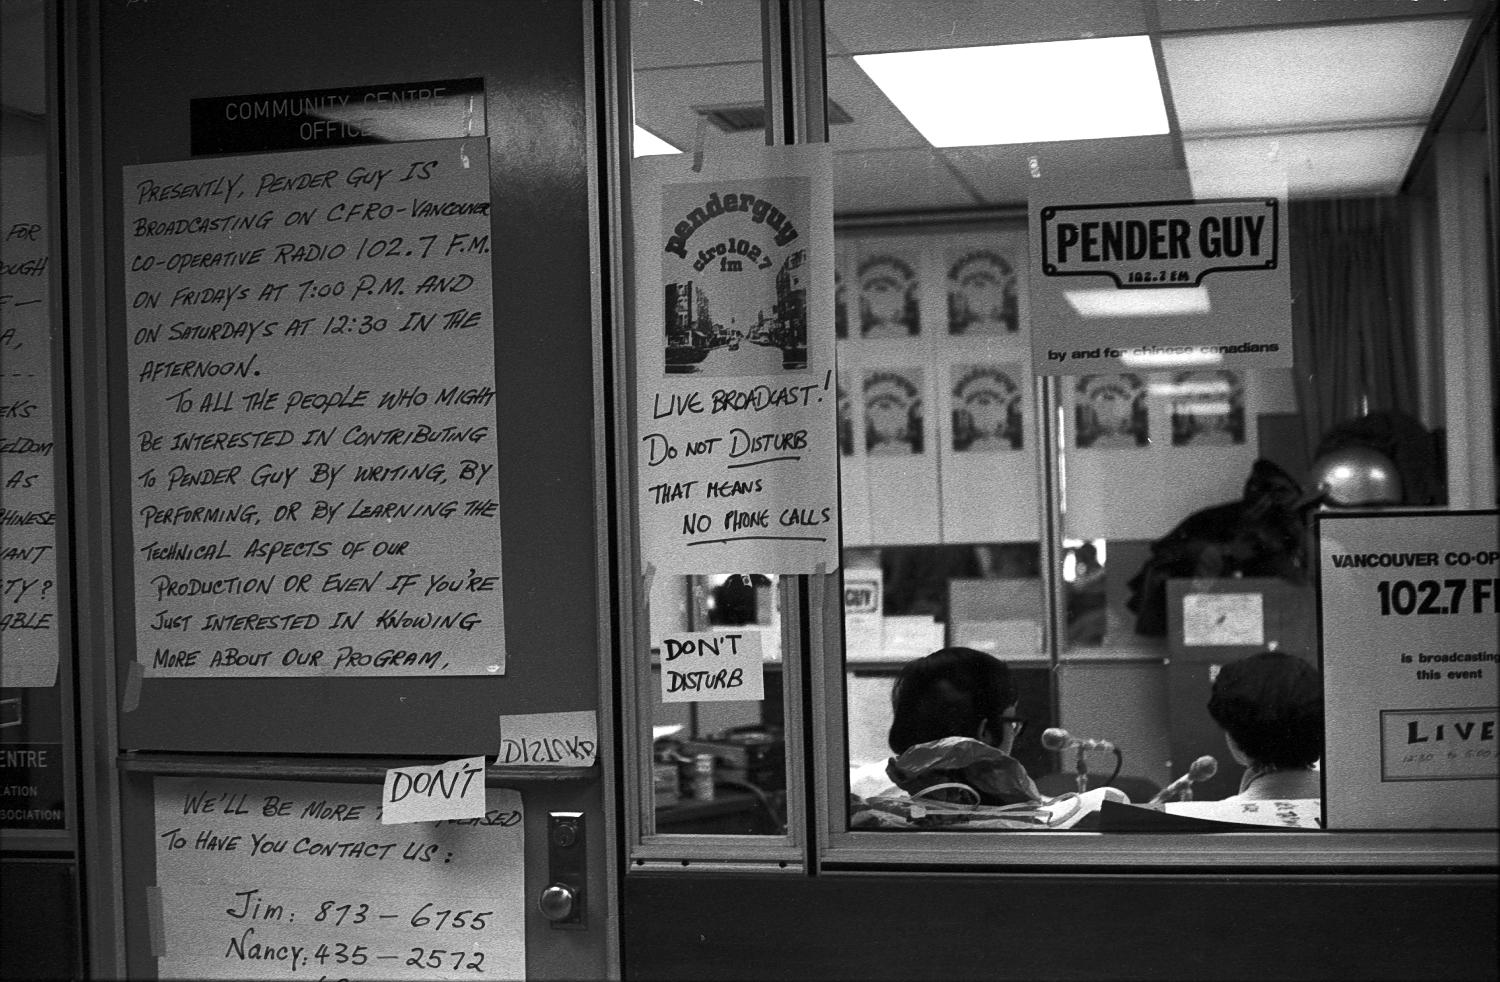 Signs outside an office at Strathcona Community Centre in which an on-air broadcast of Pender Guy was taking place, ca. 1978. Photographer:  Paul Yee. Reference code AM1523-S6-F12 -: 2008-010.0999.